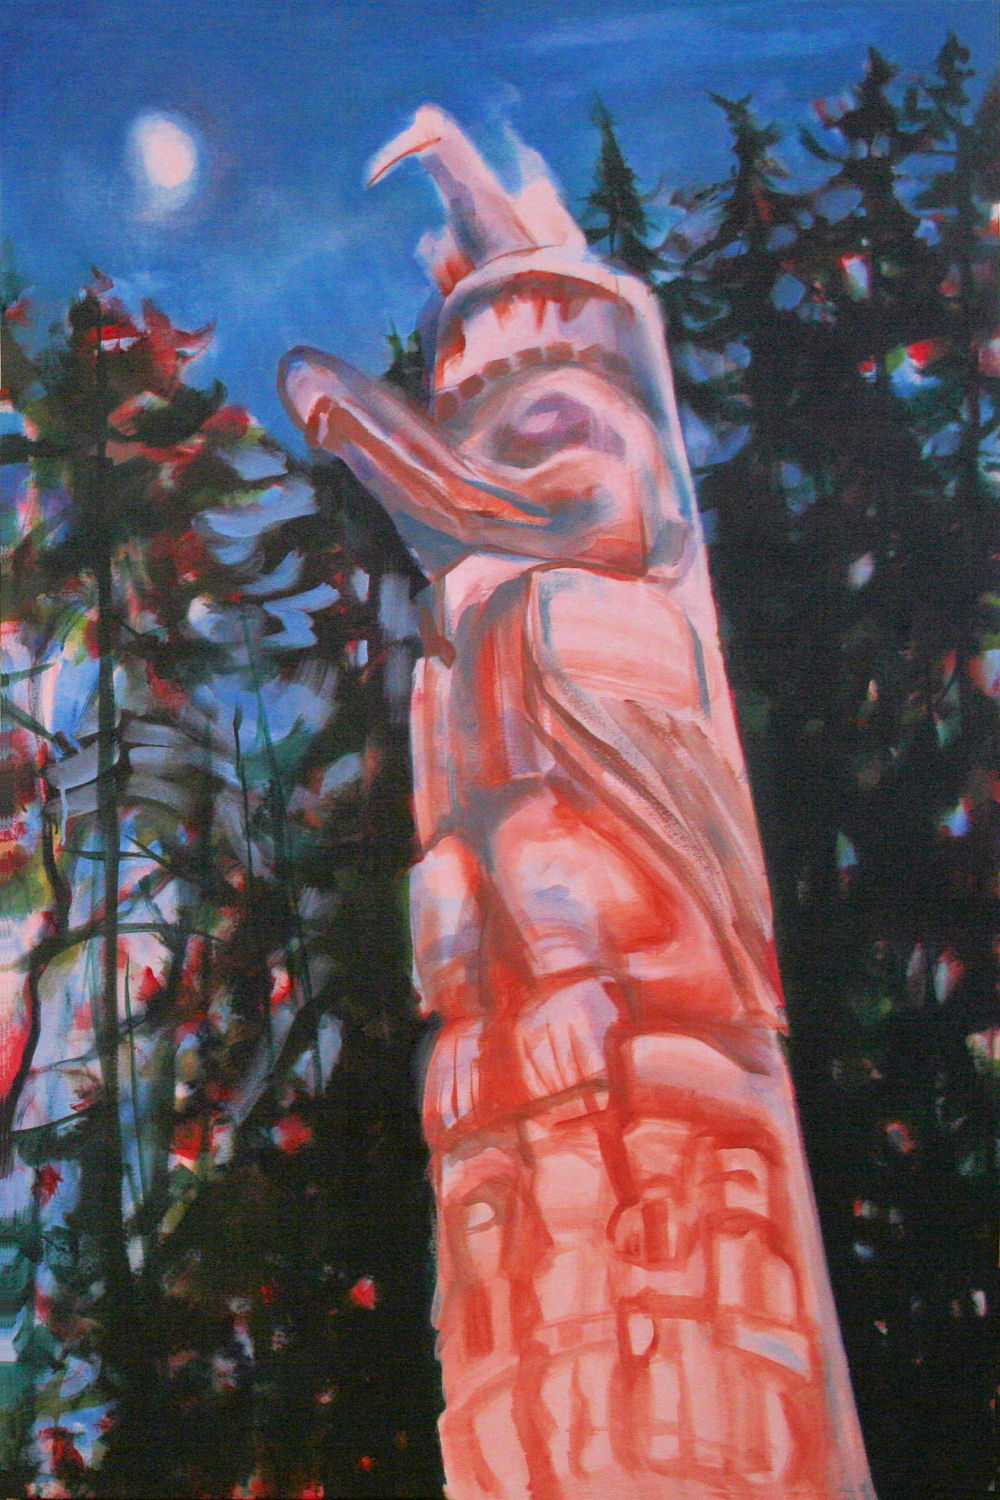 Magic Hour, one of the Haida totems downtown Victoria, B.C., Canada, 60H x 40W x 3D inches acrylics on canvas, wrapped sides painted, work just started